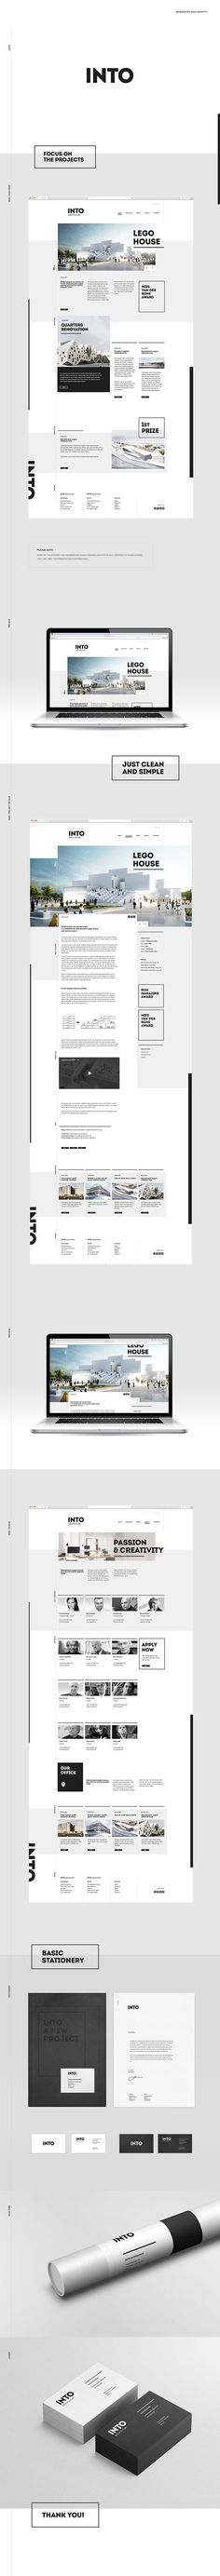 INTO   architecture office concept on Web Design Served